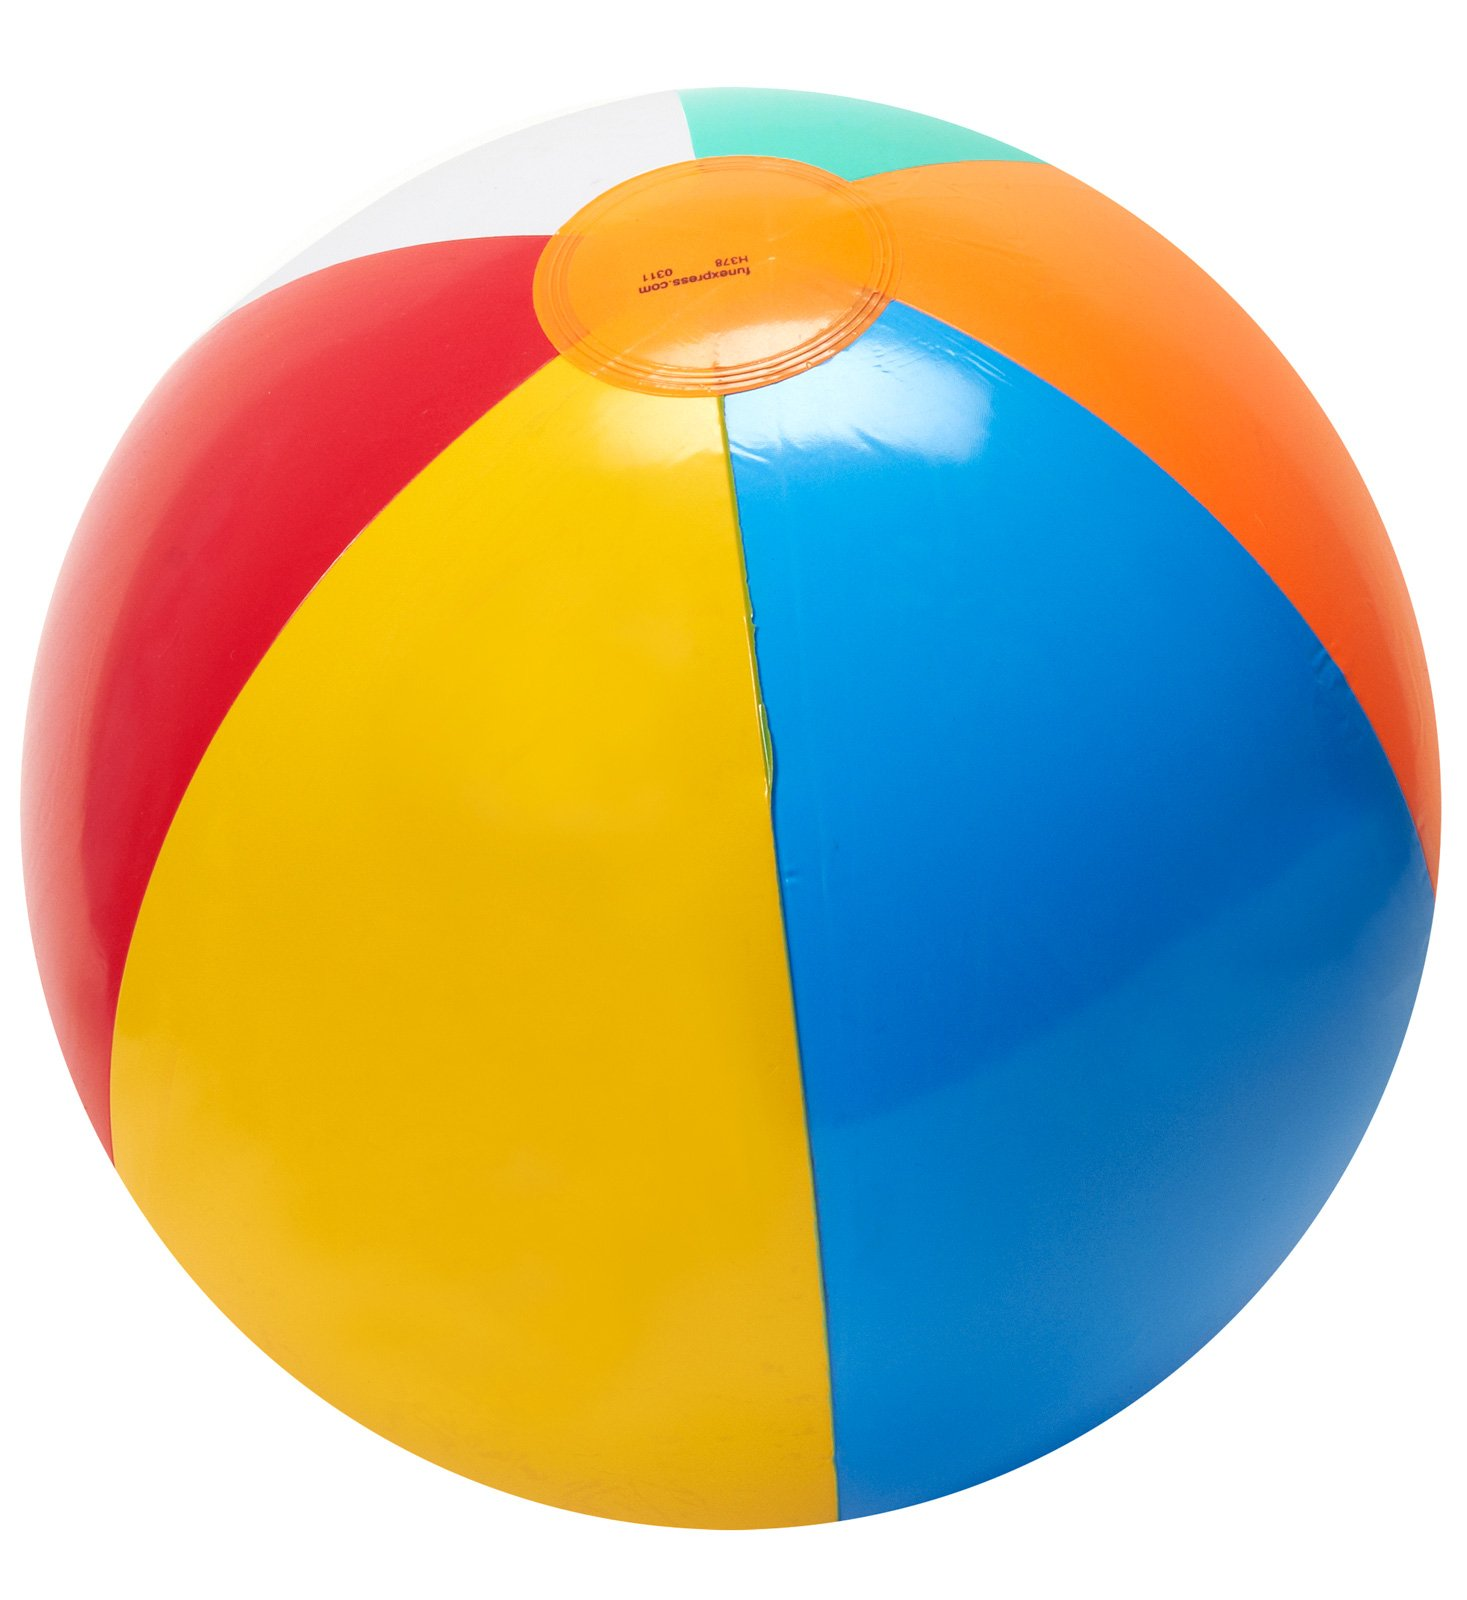 Ball for Games in the Water 871.59 Kb